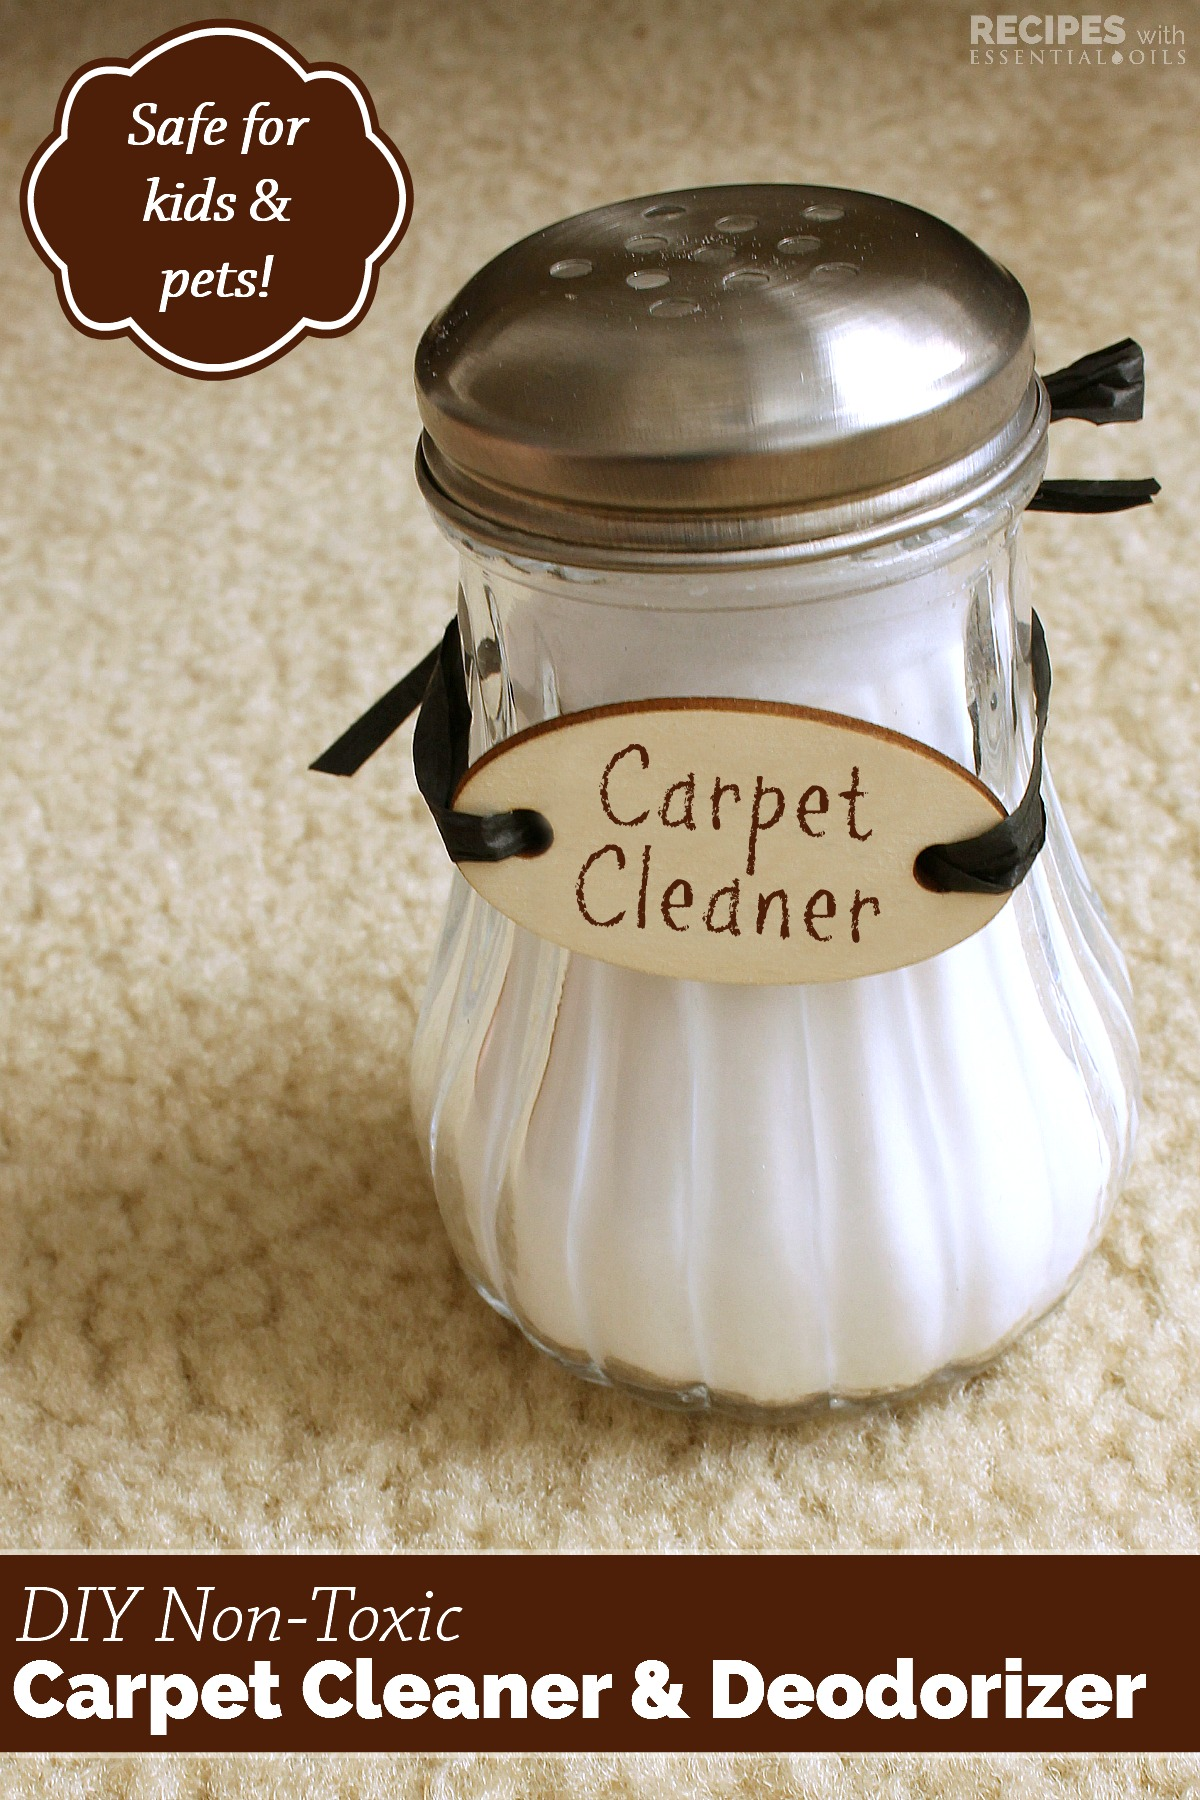 diy carpet cleaner. DIY NonToxic Carpet Cleaner And Deodorizer From RecipesWithEssentialOils.com Diy C